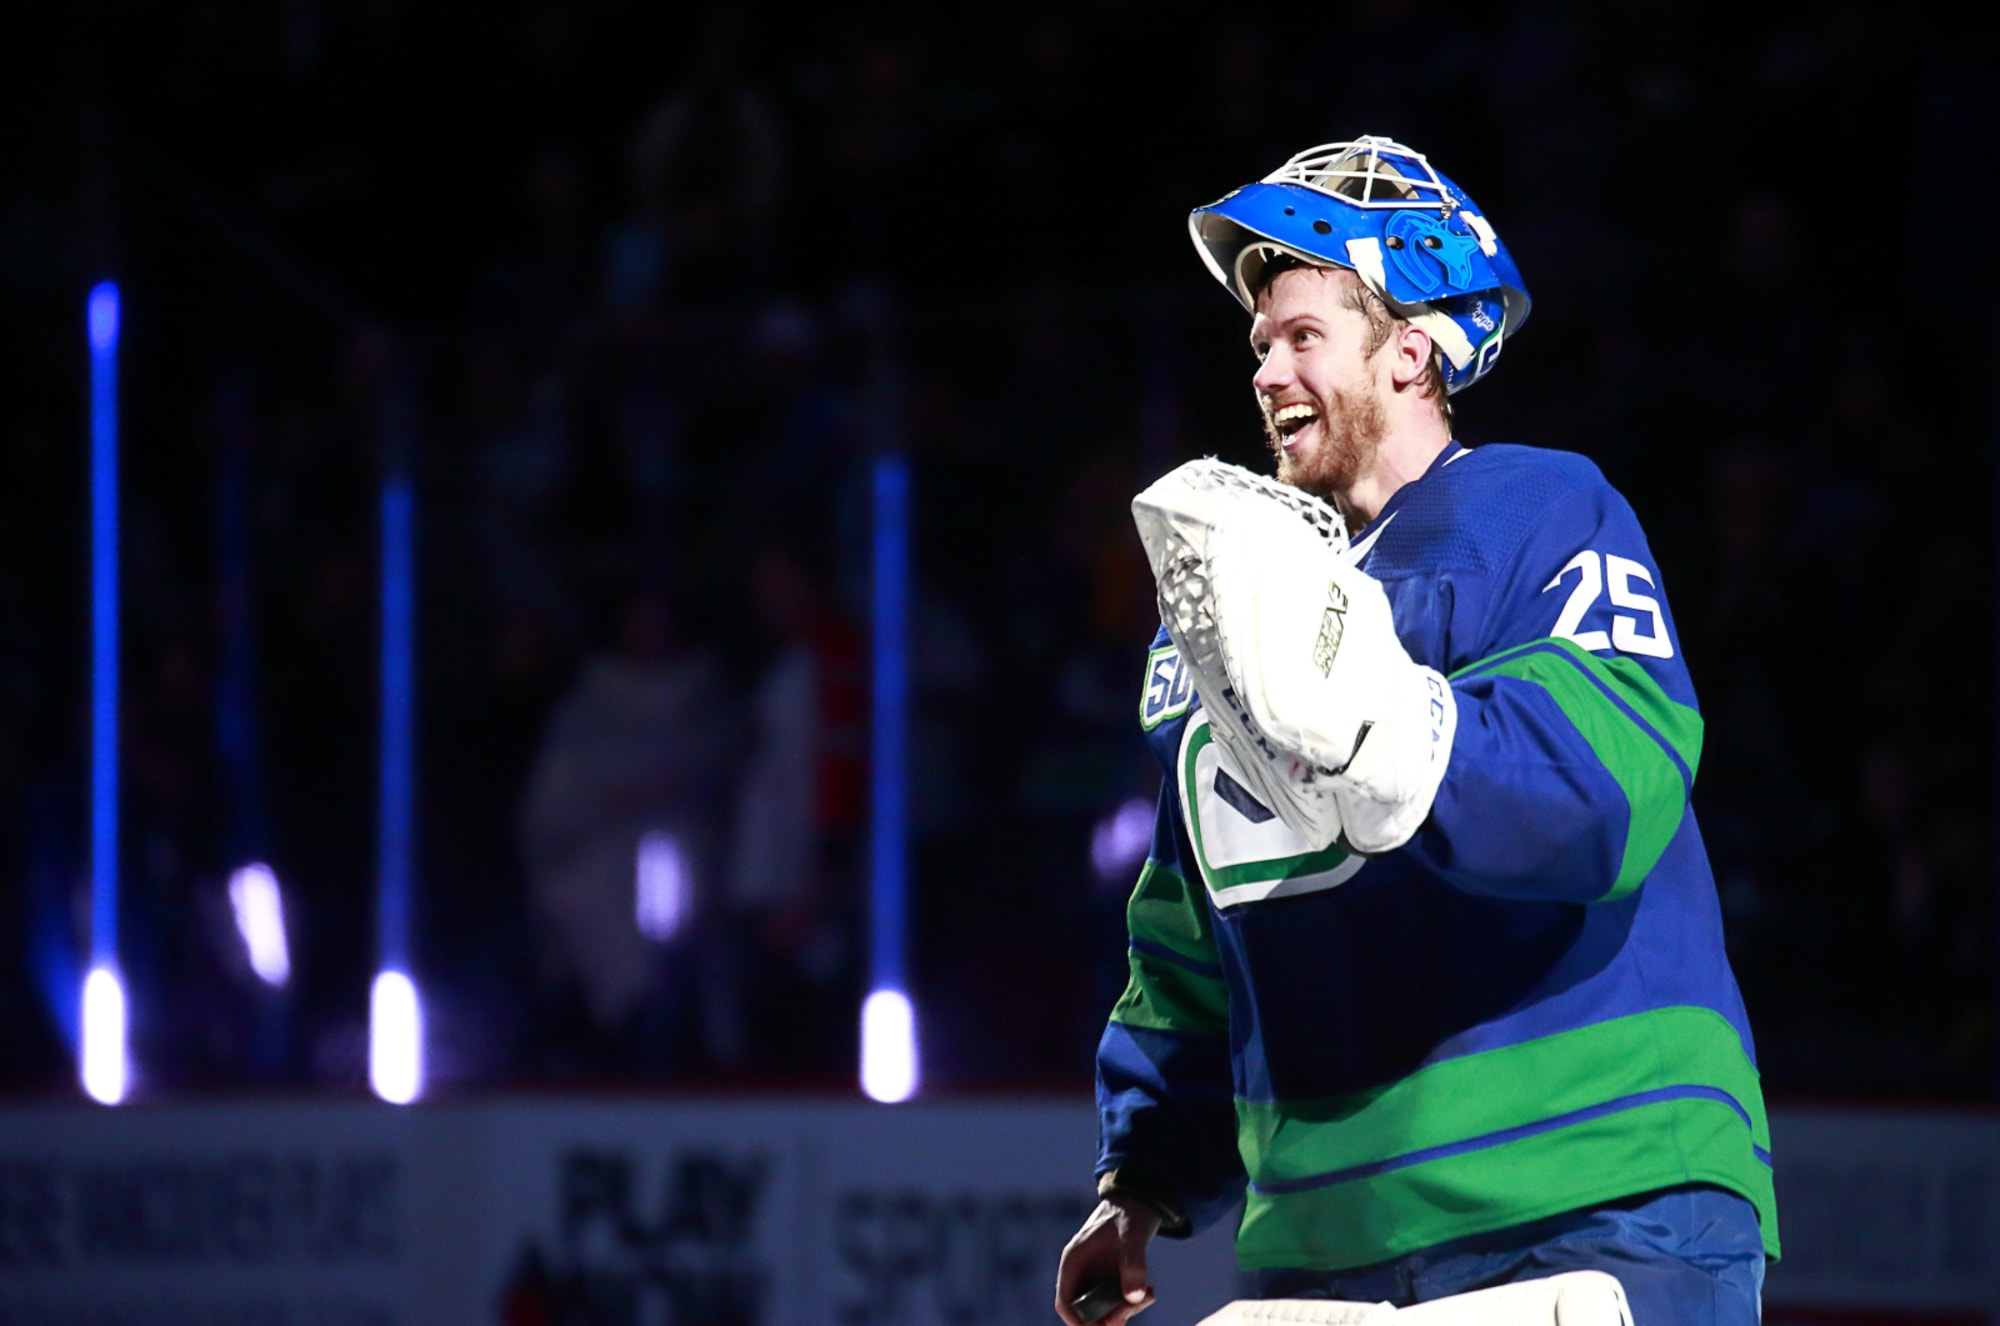 Canucks Jacob Markstrom Replaces Marc Andre Fleury On All Star Roster